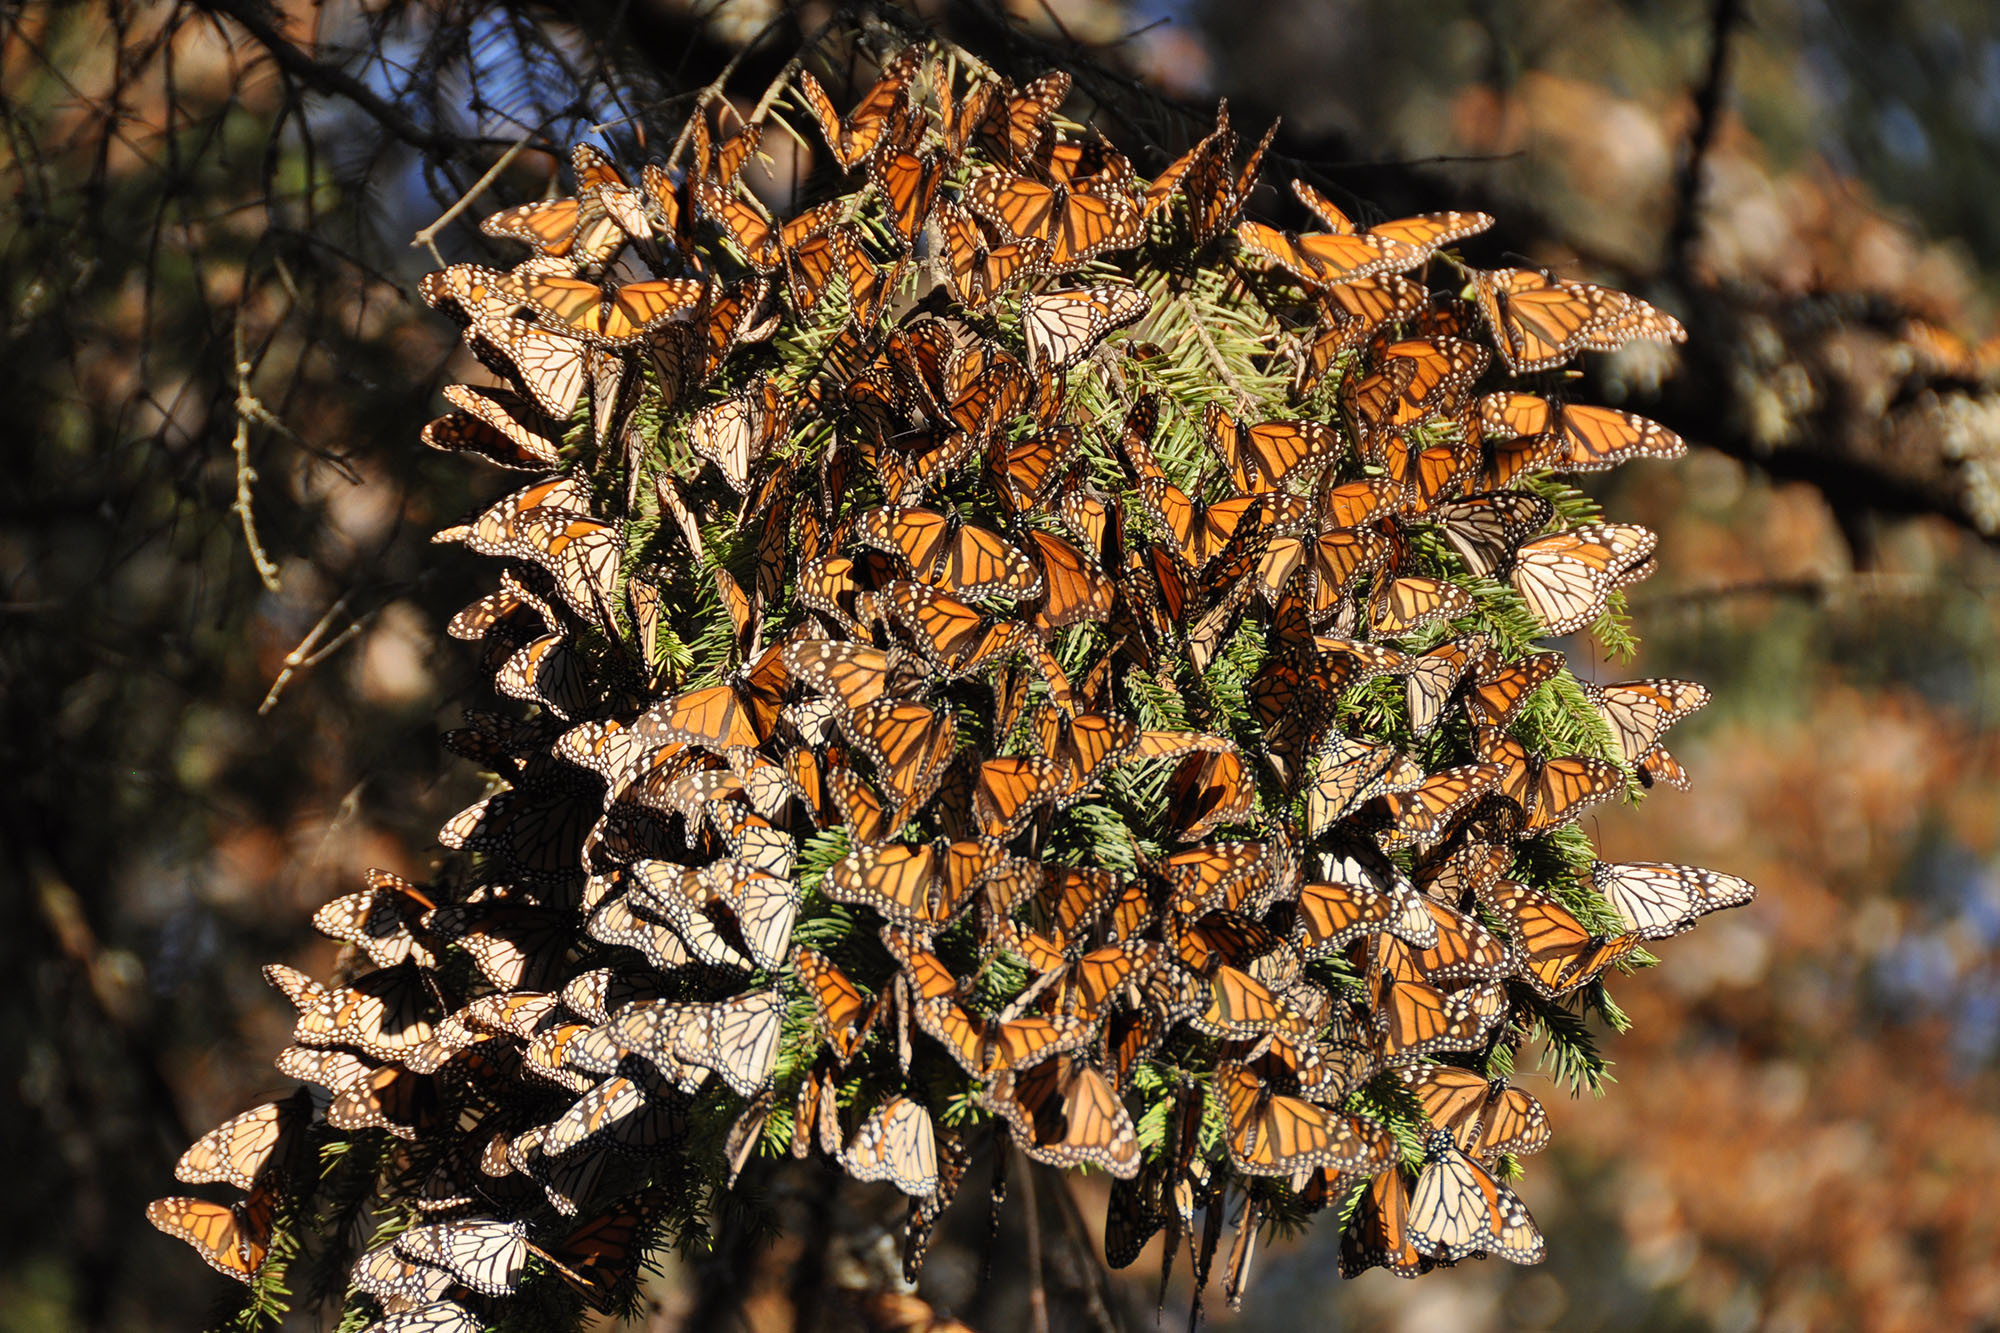 a cluster of monarch butterflies gather on a tree branch in the sun.